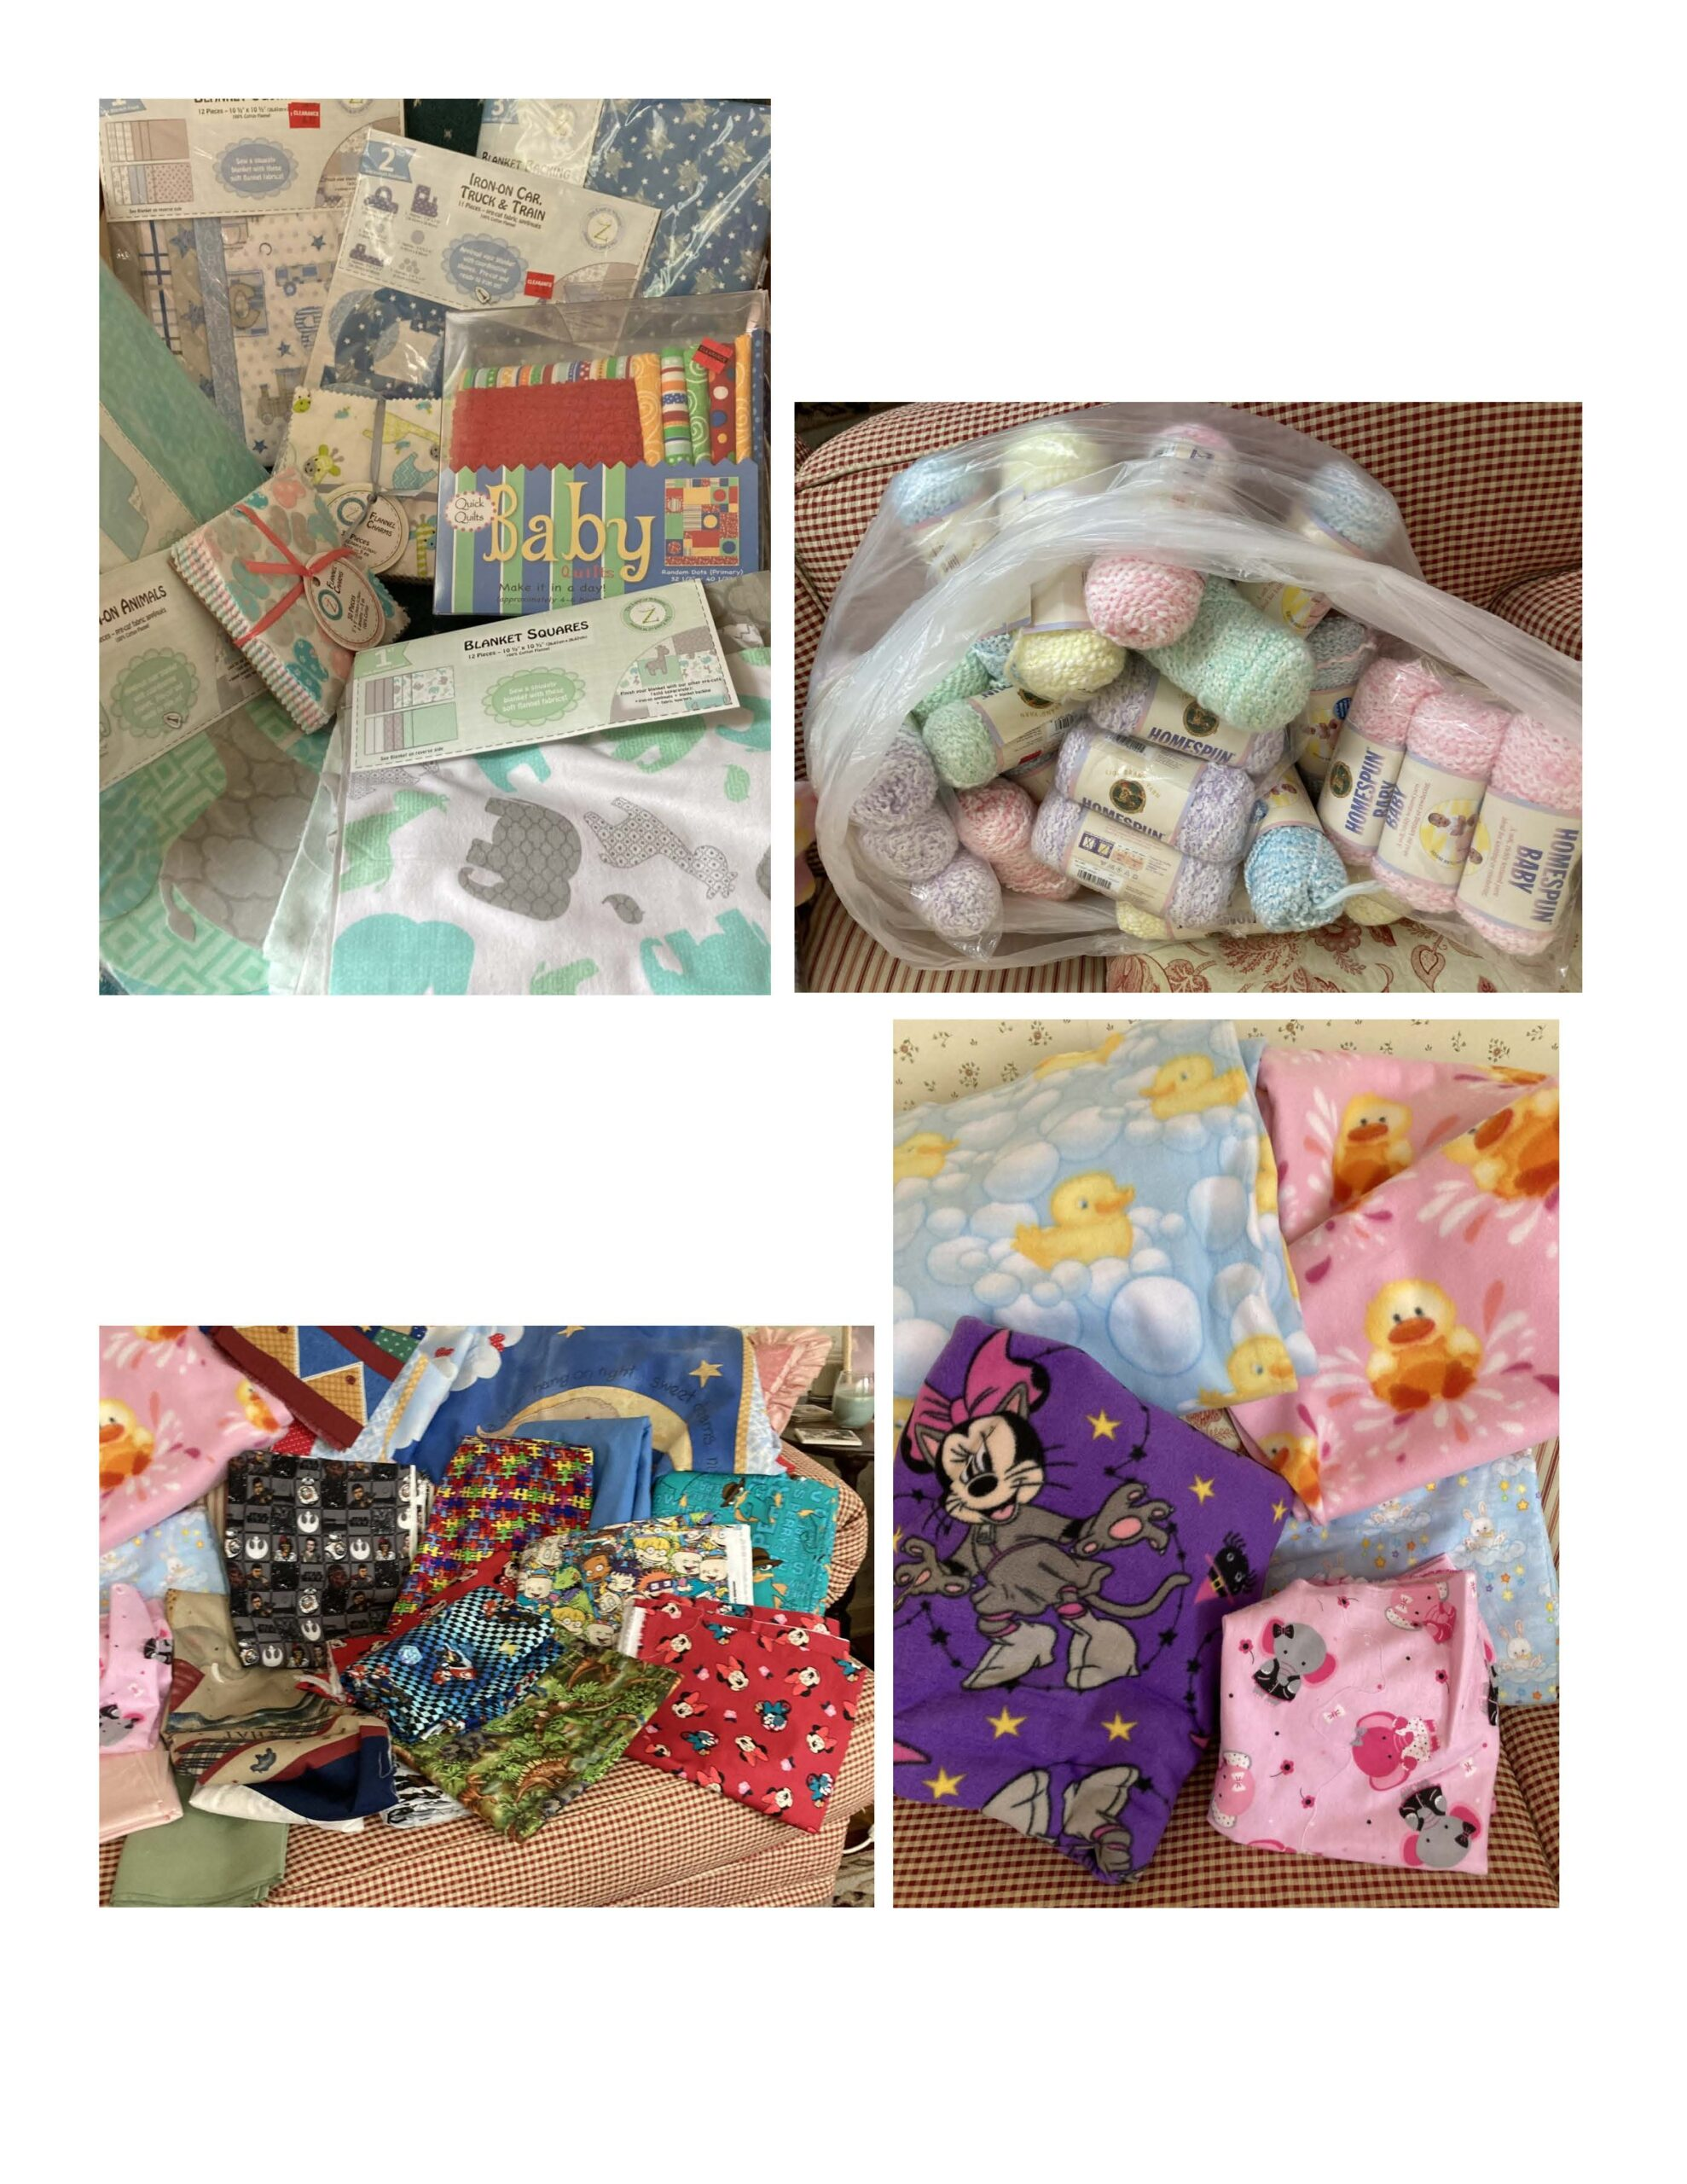 items donated by Sew Biz and Joanne's